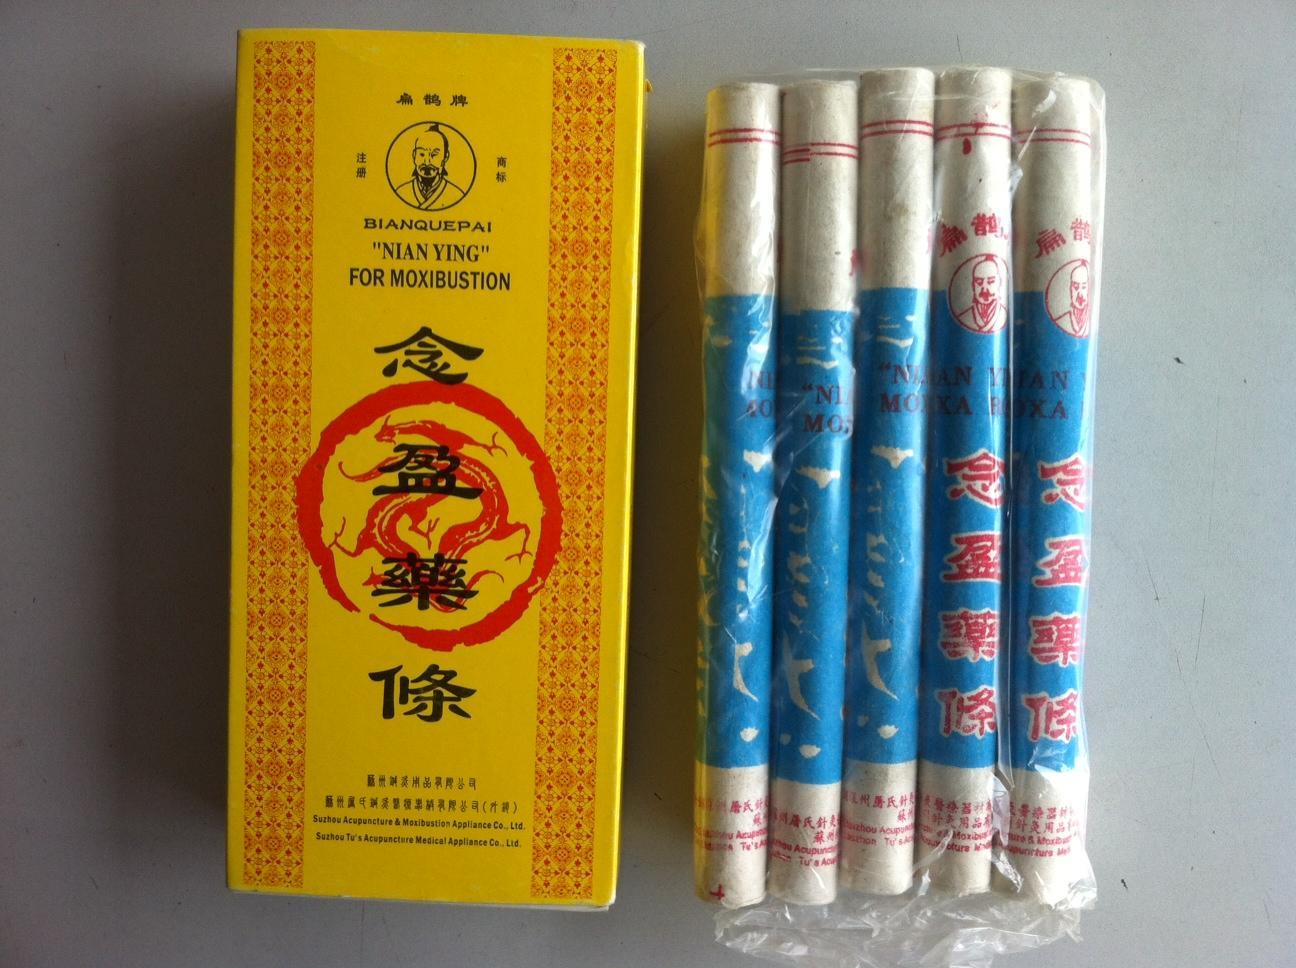 Nian Ying Medicated Moxa Roll 10 PCS/Box Bianque Brand